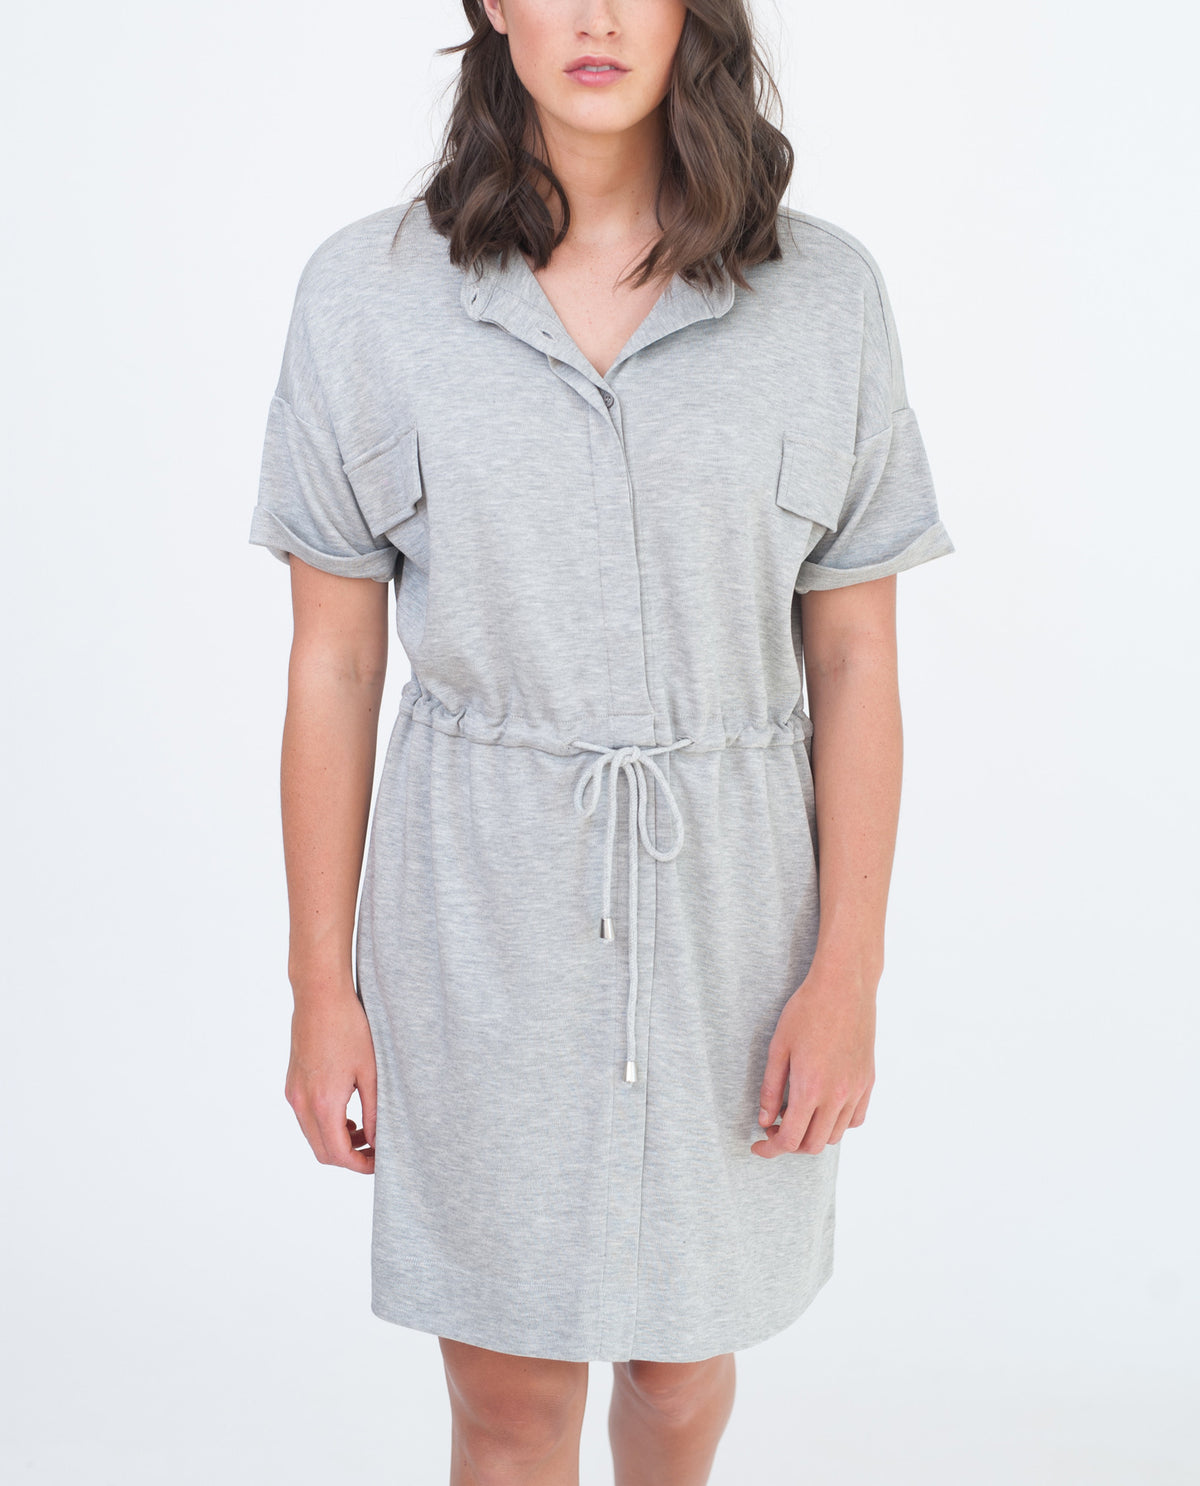 MILA Lyocell And Cotton Shirt Dress In Light Grey